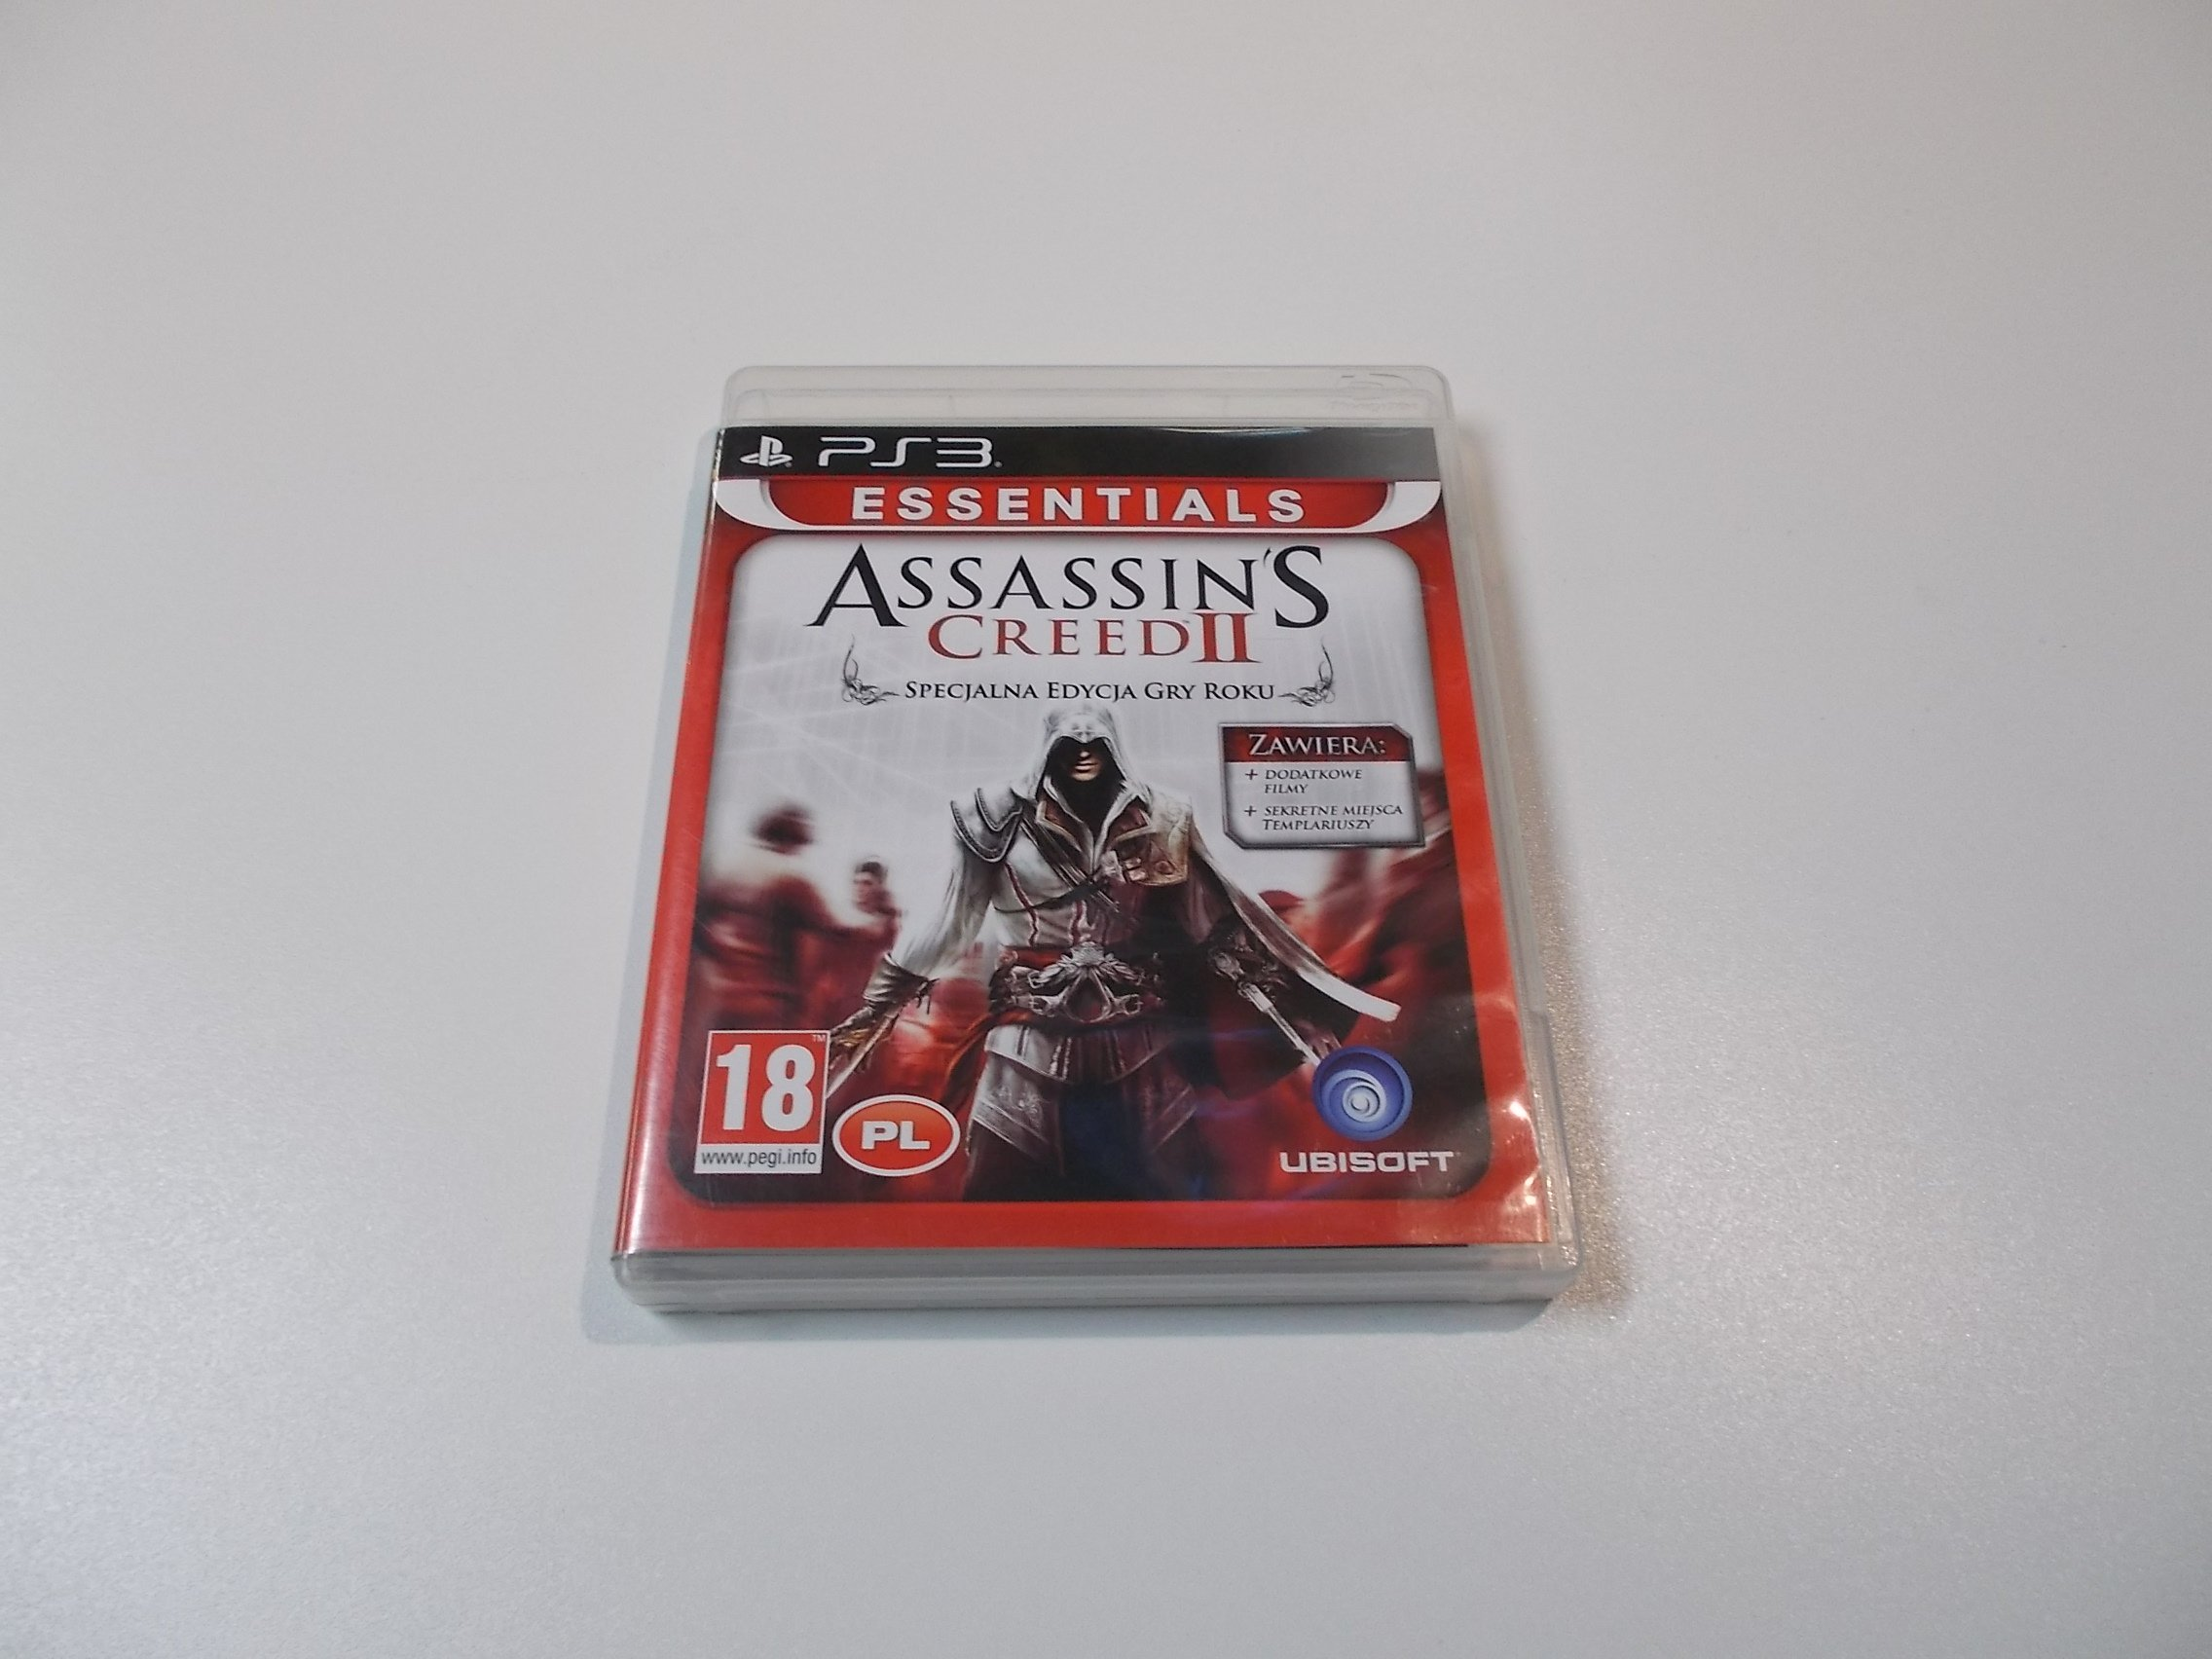 Assassin's Creed 2 II - GRA Ps3 - Sklep